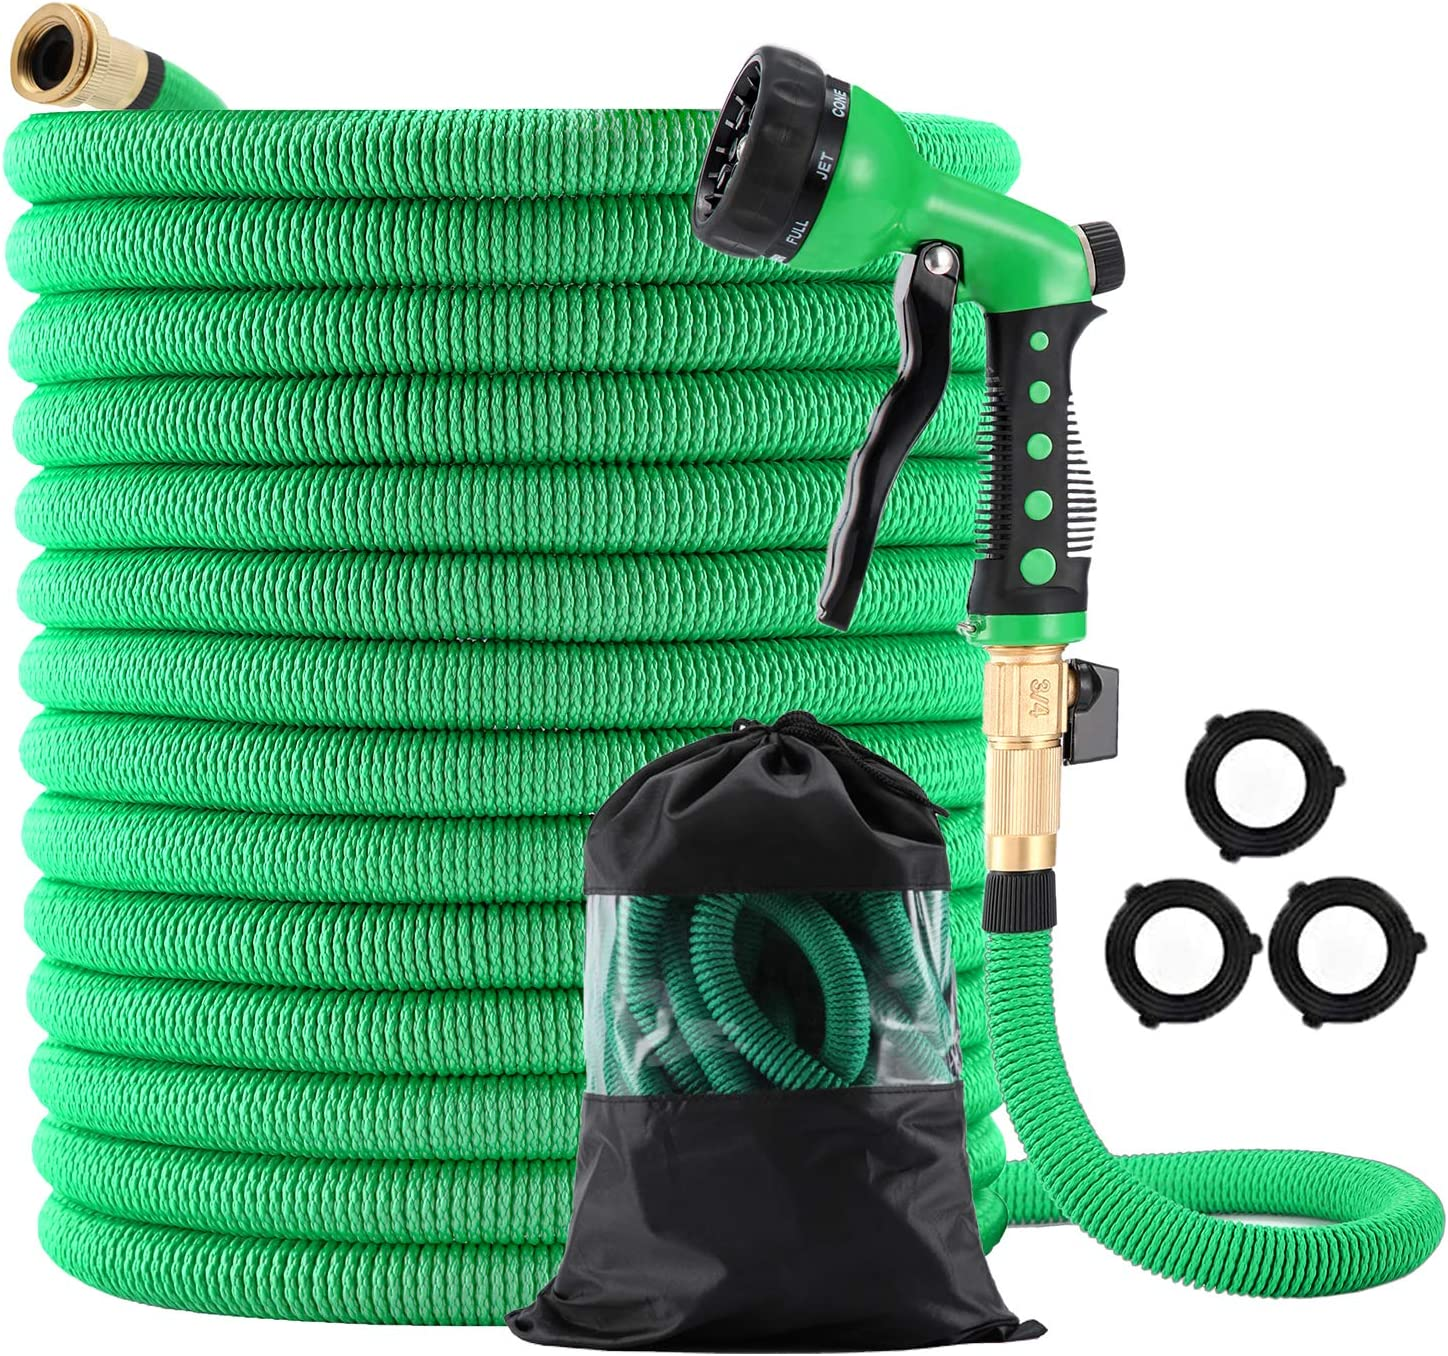 low-pricing Expandable Garden Hose Max 66% OFF 75 ft with 8 4in 3 Function So and Nozzle